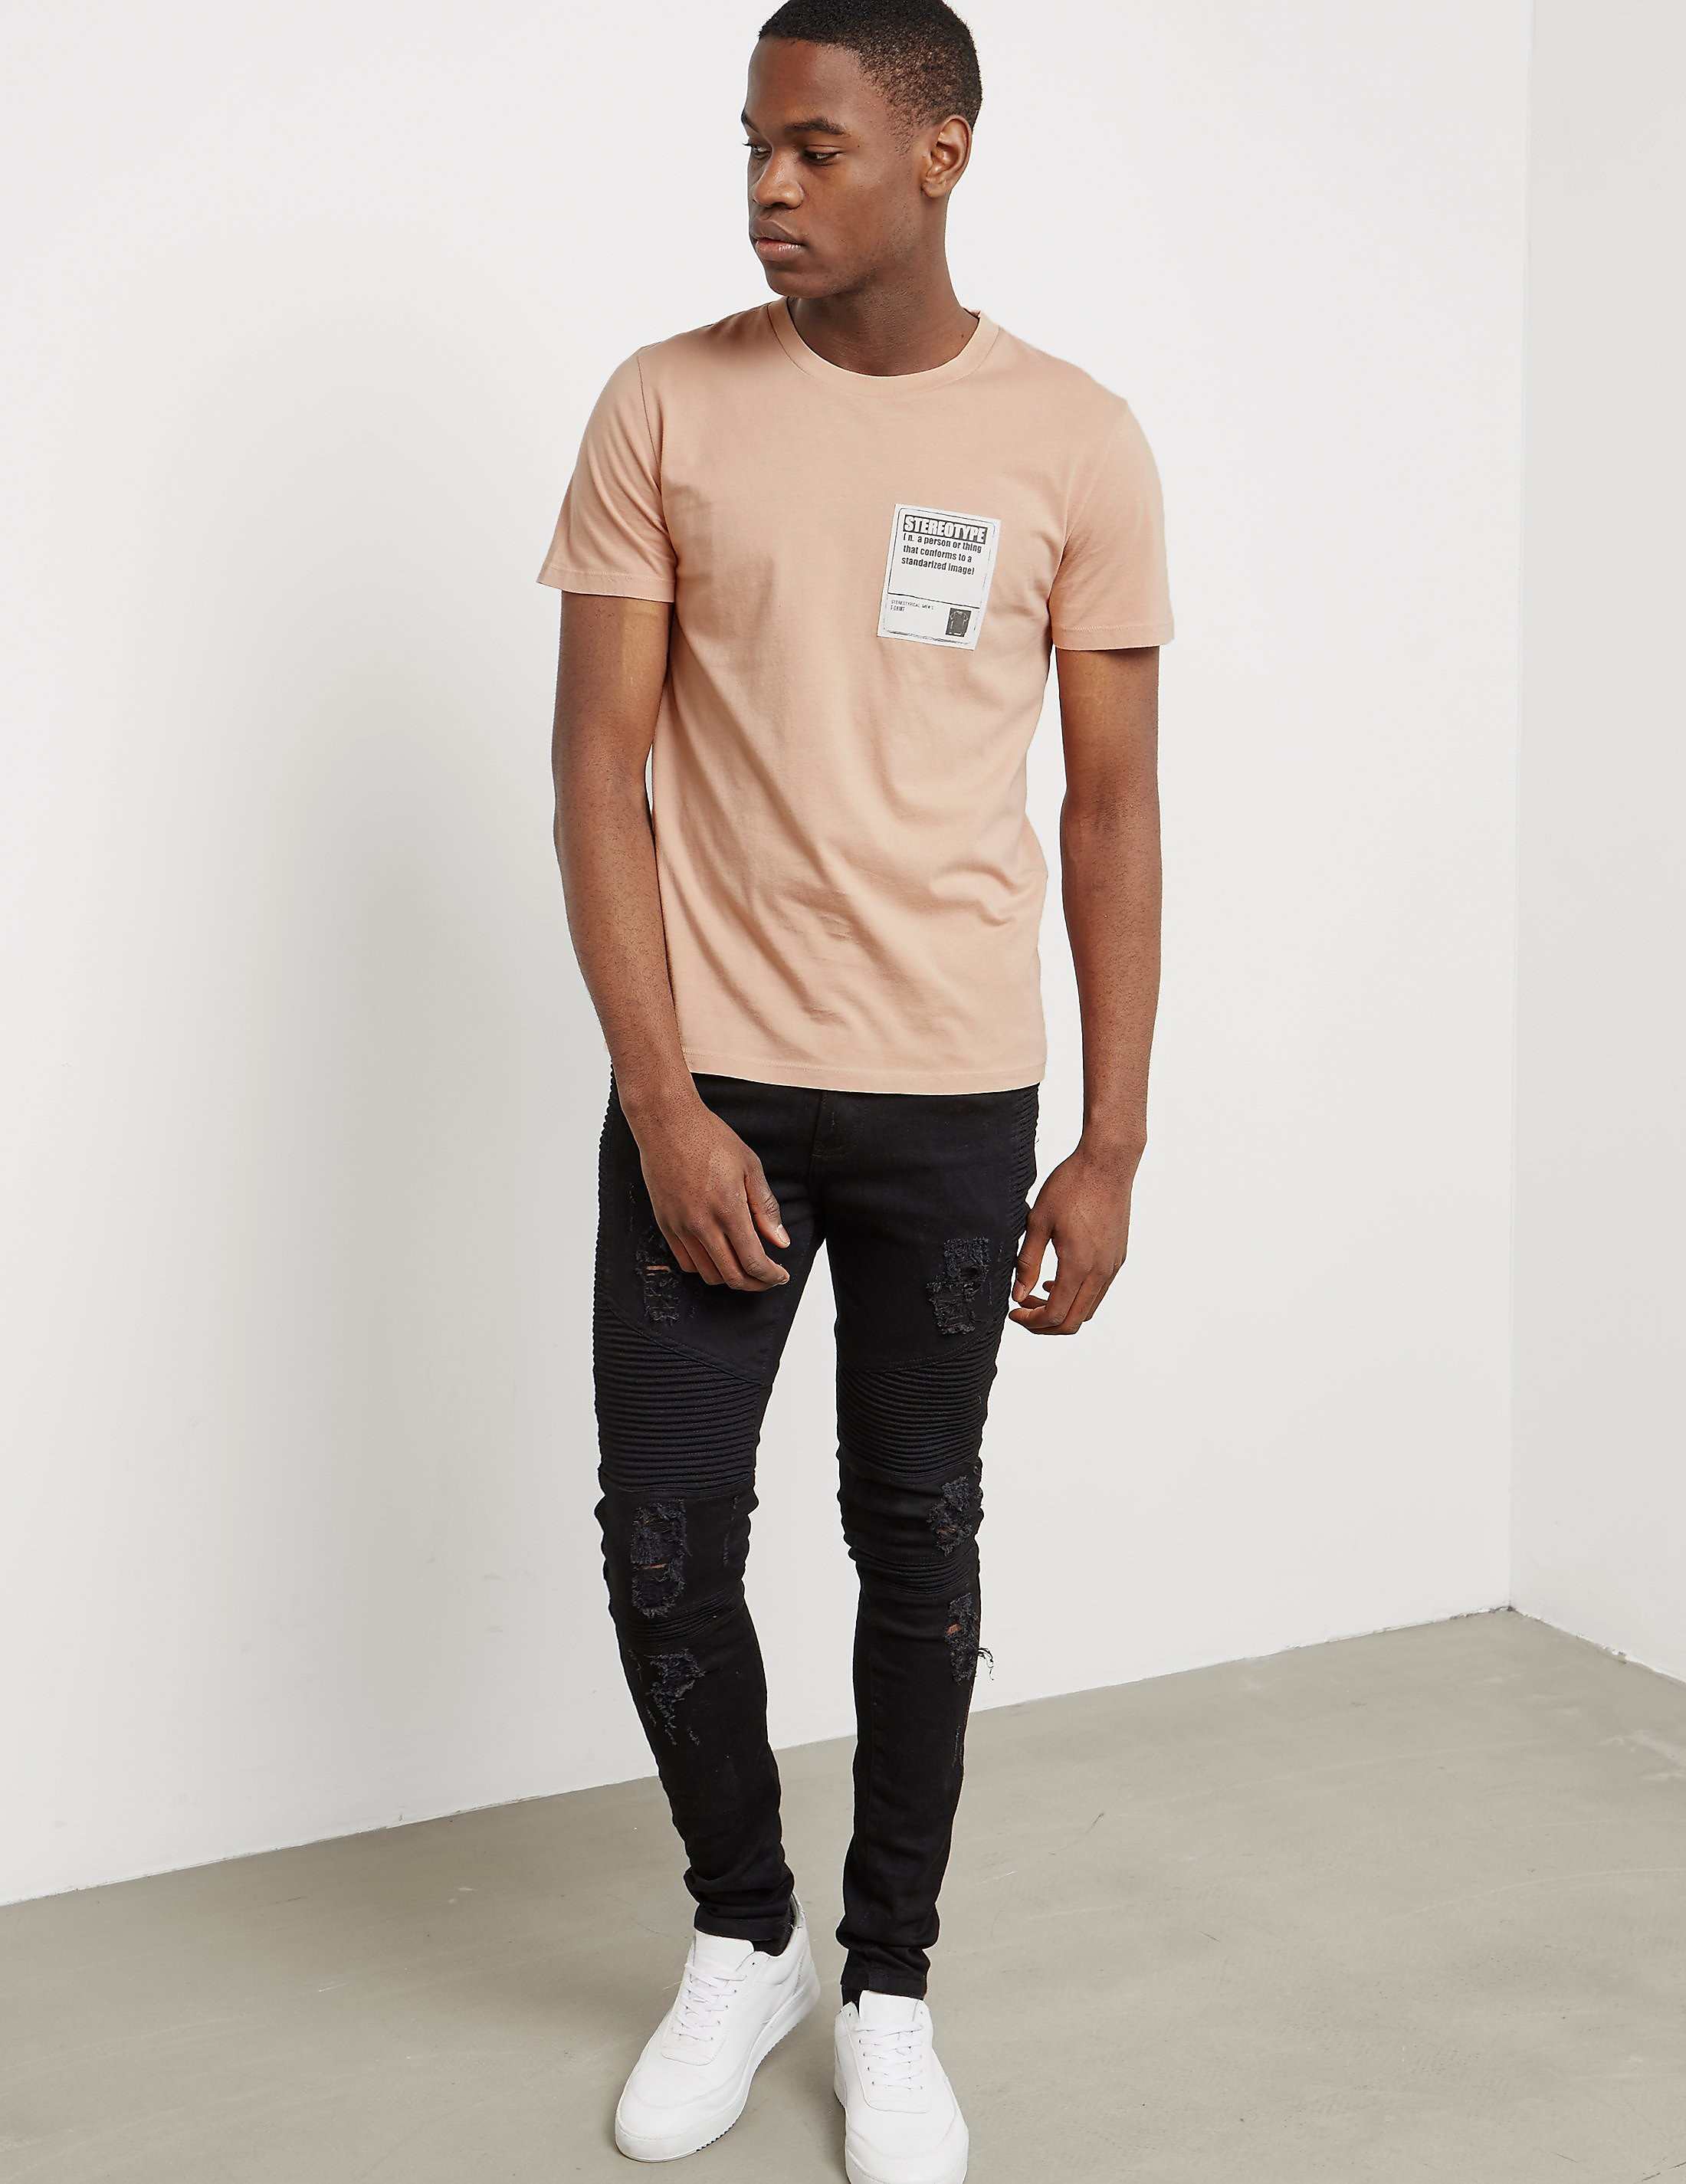 Maison Margiela Stereotype Short Sleeve T-Shirt